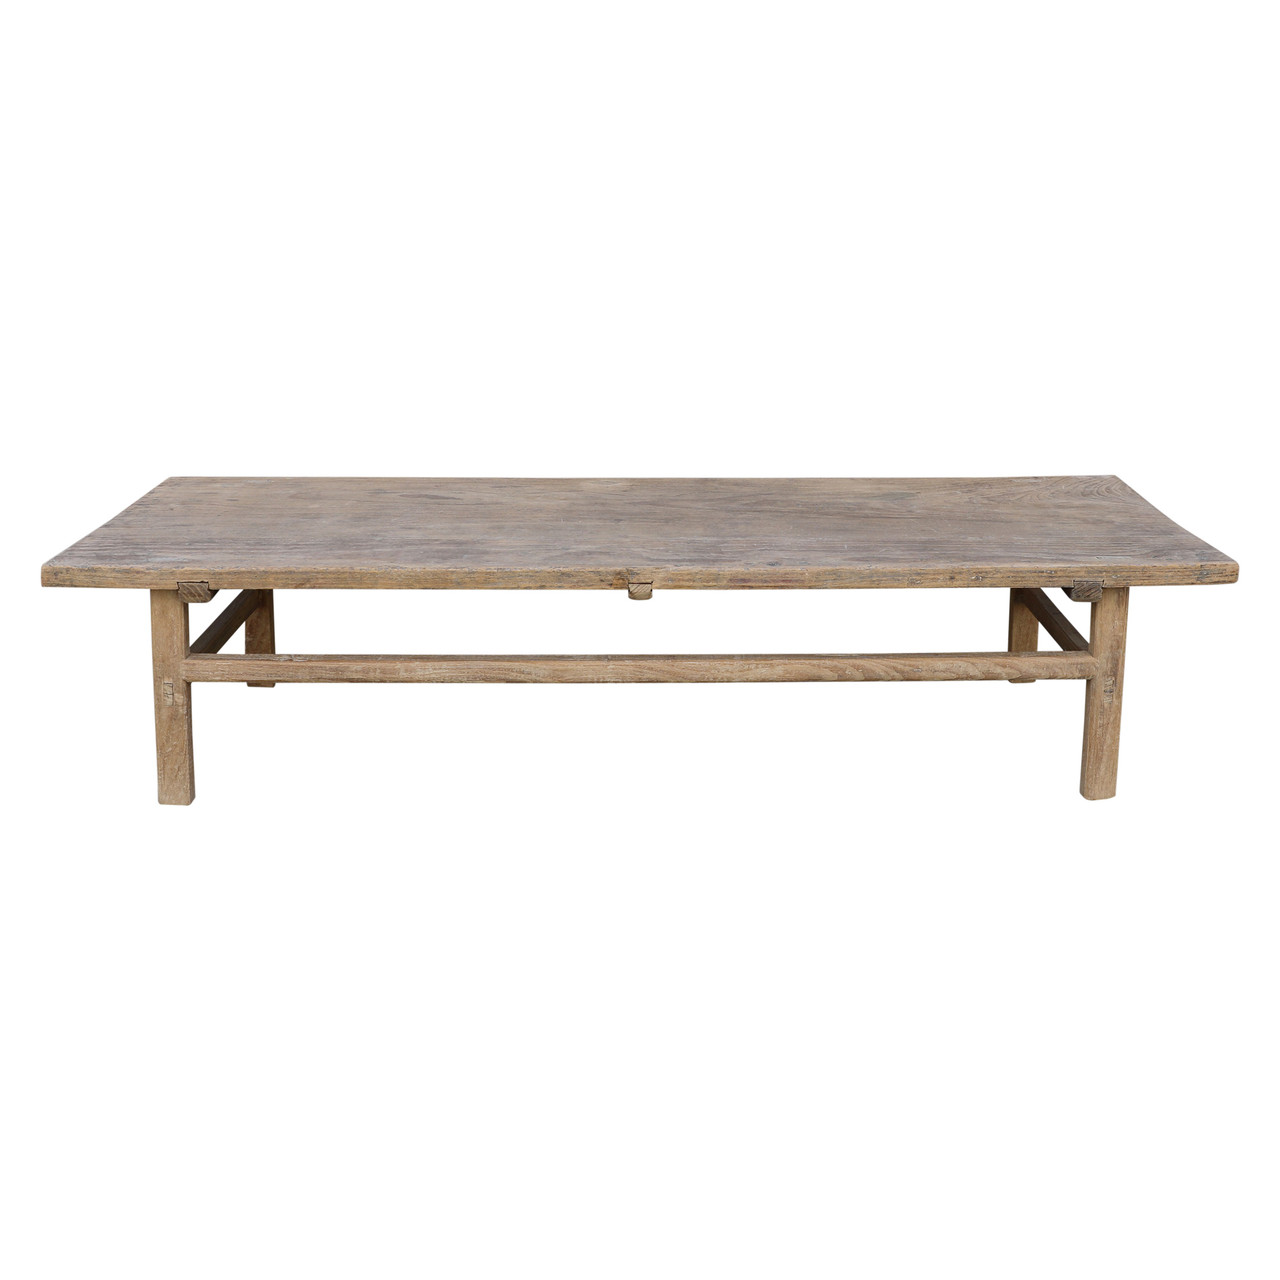 Vintage Coffee Table Medium About 5 6 Long With Weathered Natural Wood Finish Size Color Vary Lilys Living